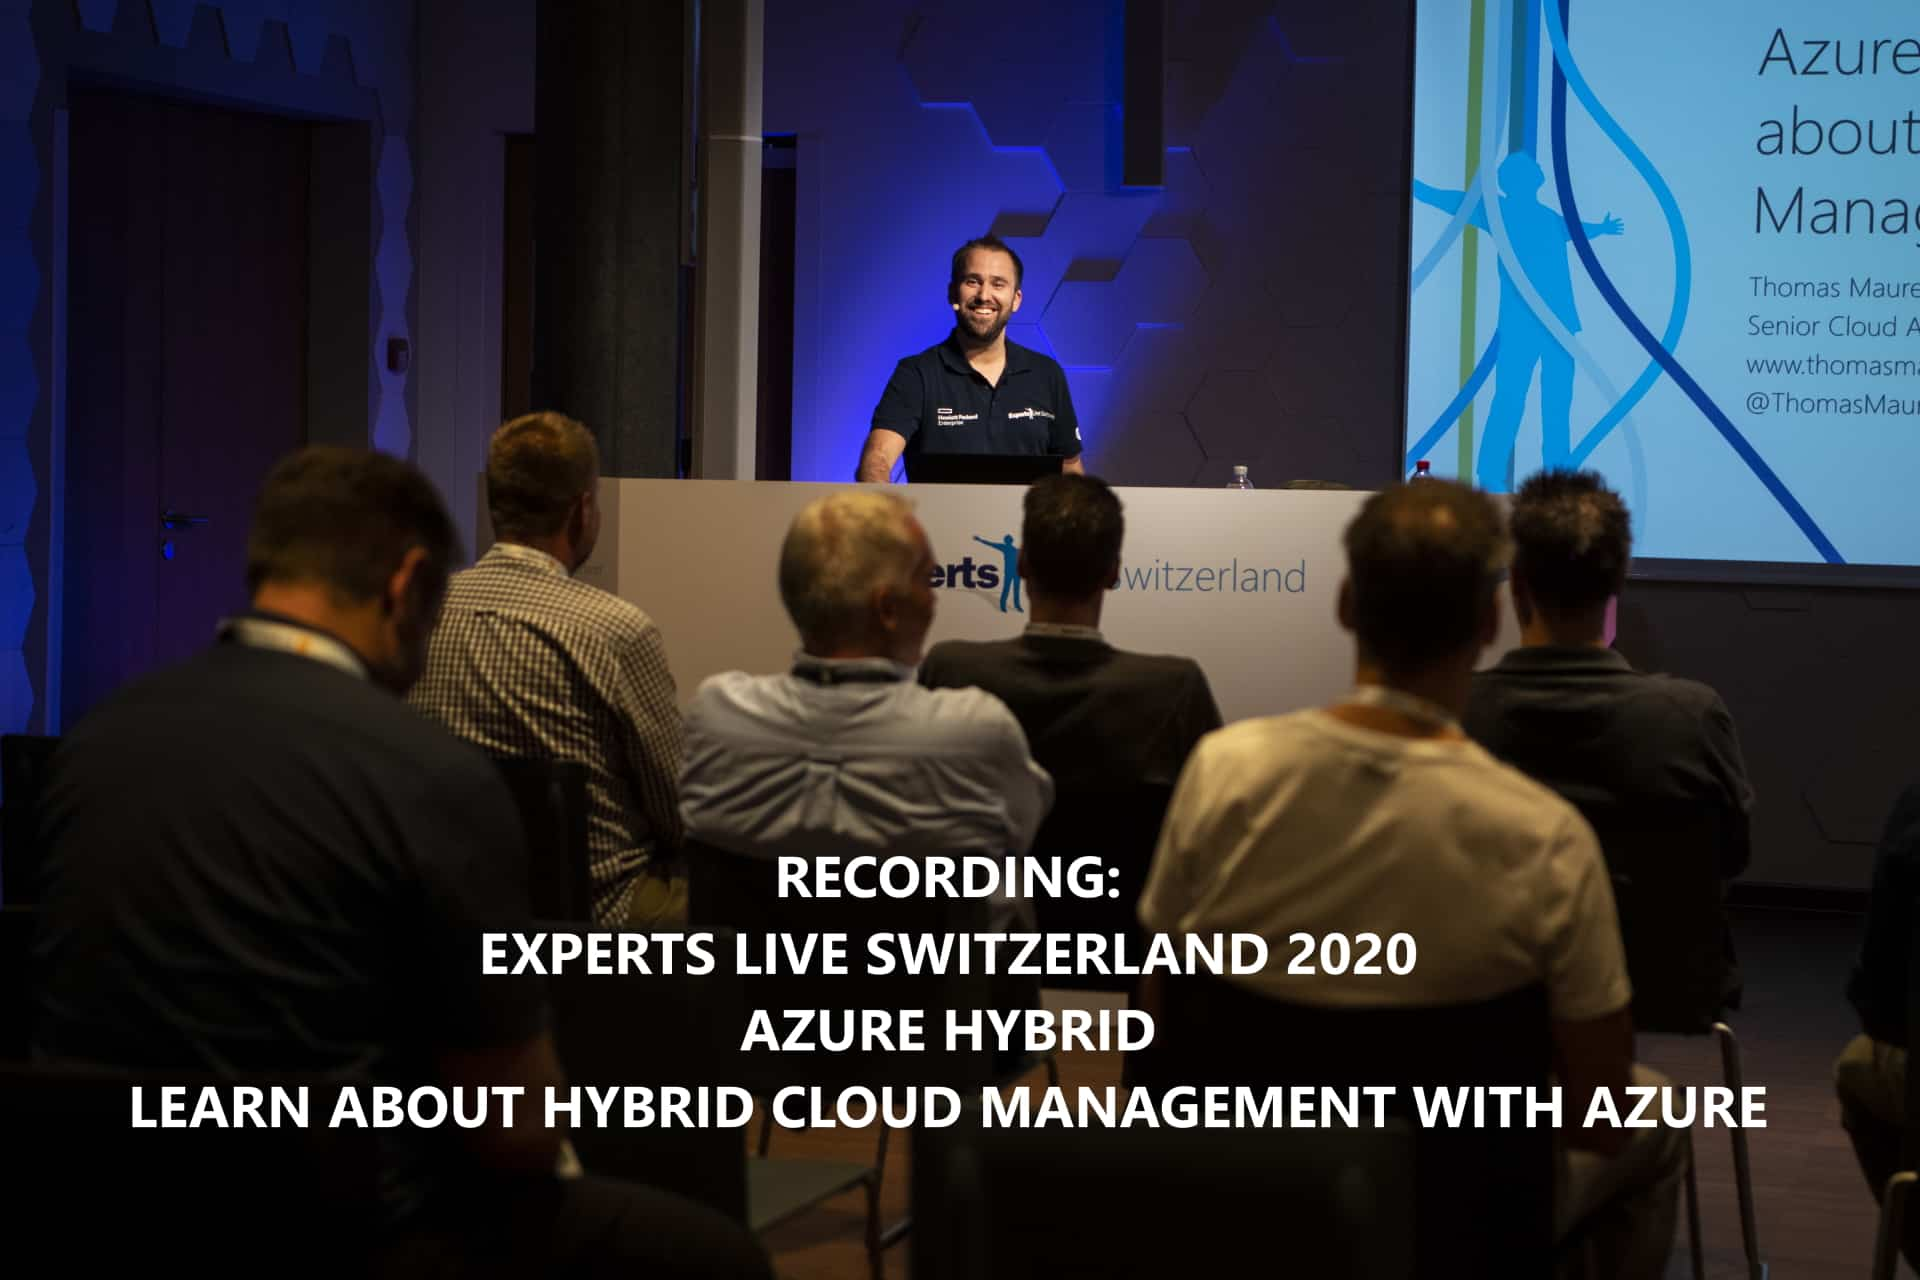 Experts Live Switzerland 2020 Azure Hybrid - Learn about Hybrid Cloud Management with Azure